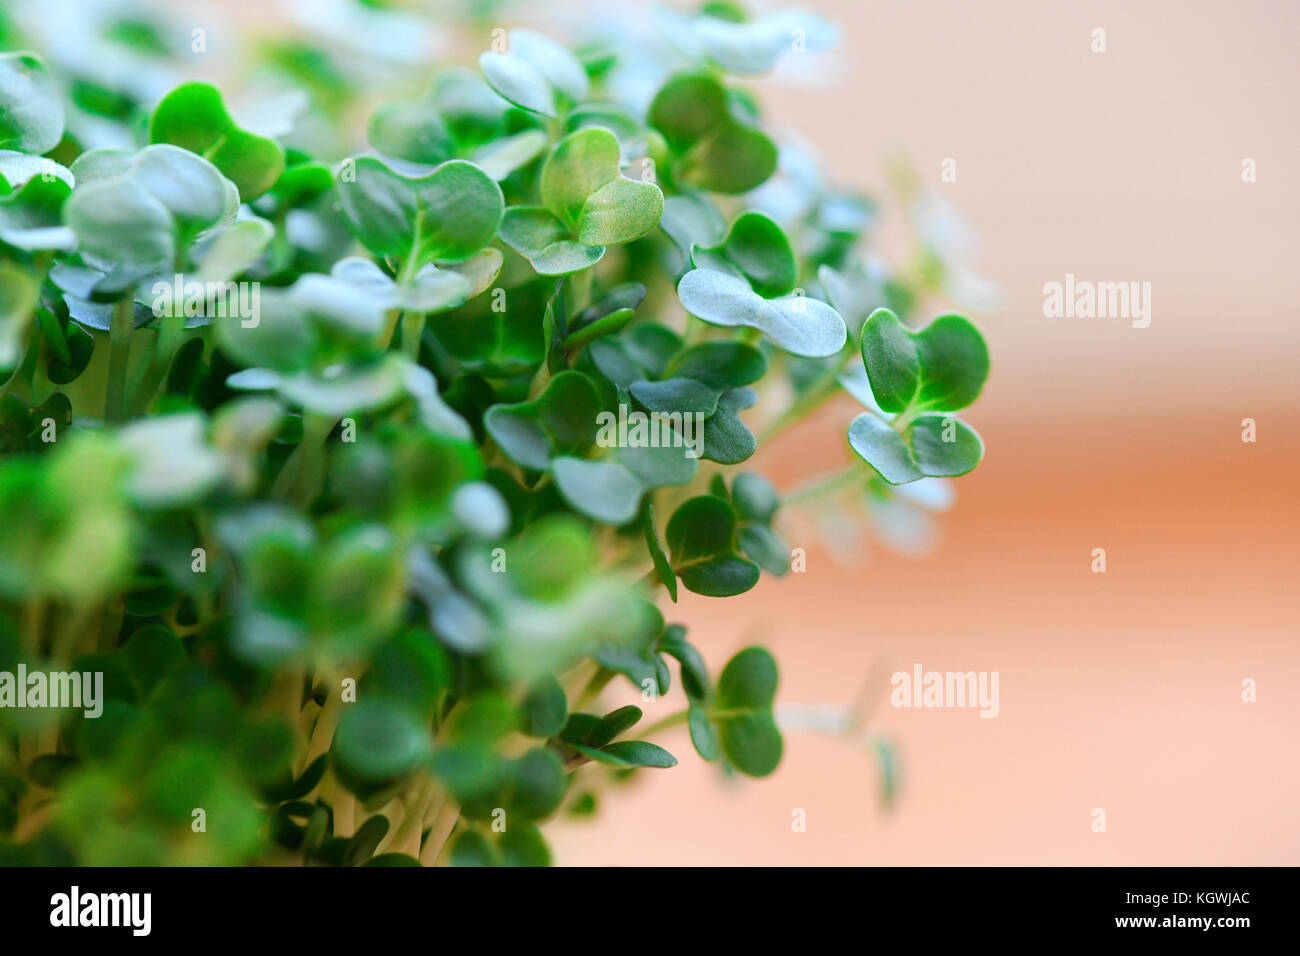 macro image of organic cress used for salads and plant based meals a herb with health benefits , shot in a selective - Stock Image